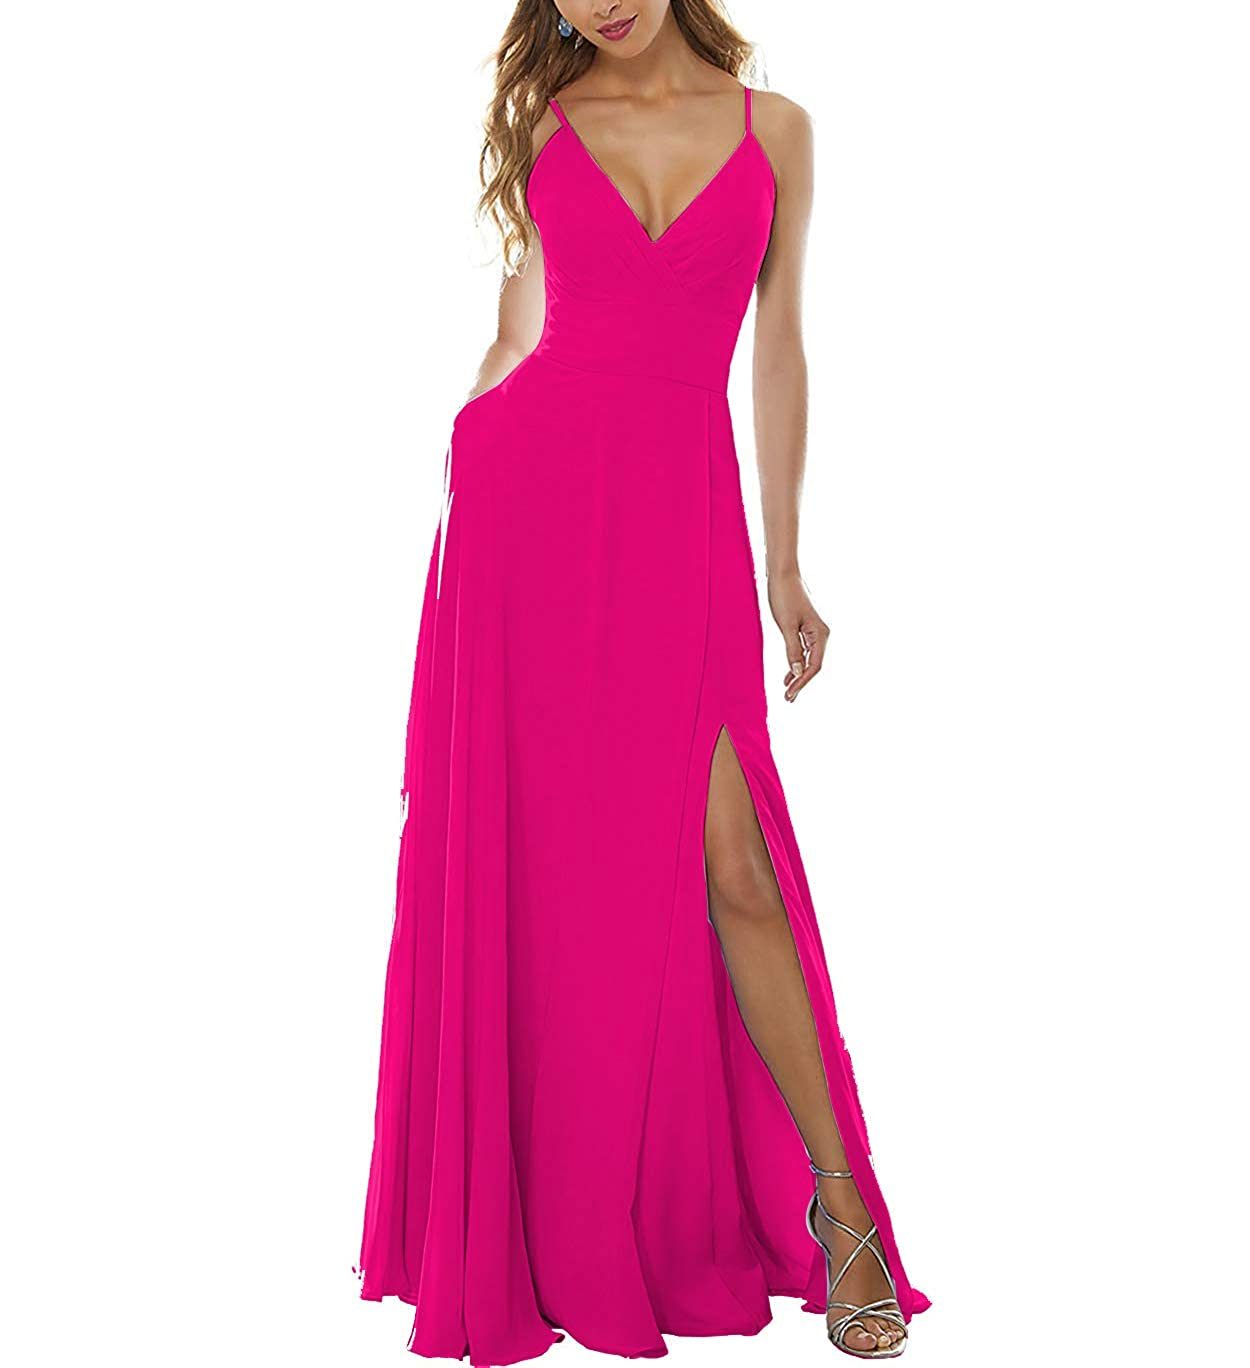 Hot Pink Stylefun Women's Side Split Bridesmaid Gowns VNeckline Spaghetti Straps Long Prom Party Dresses KN004